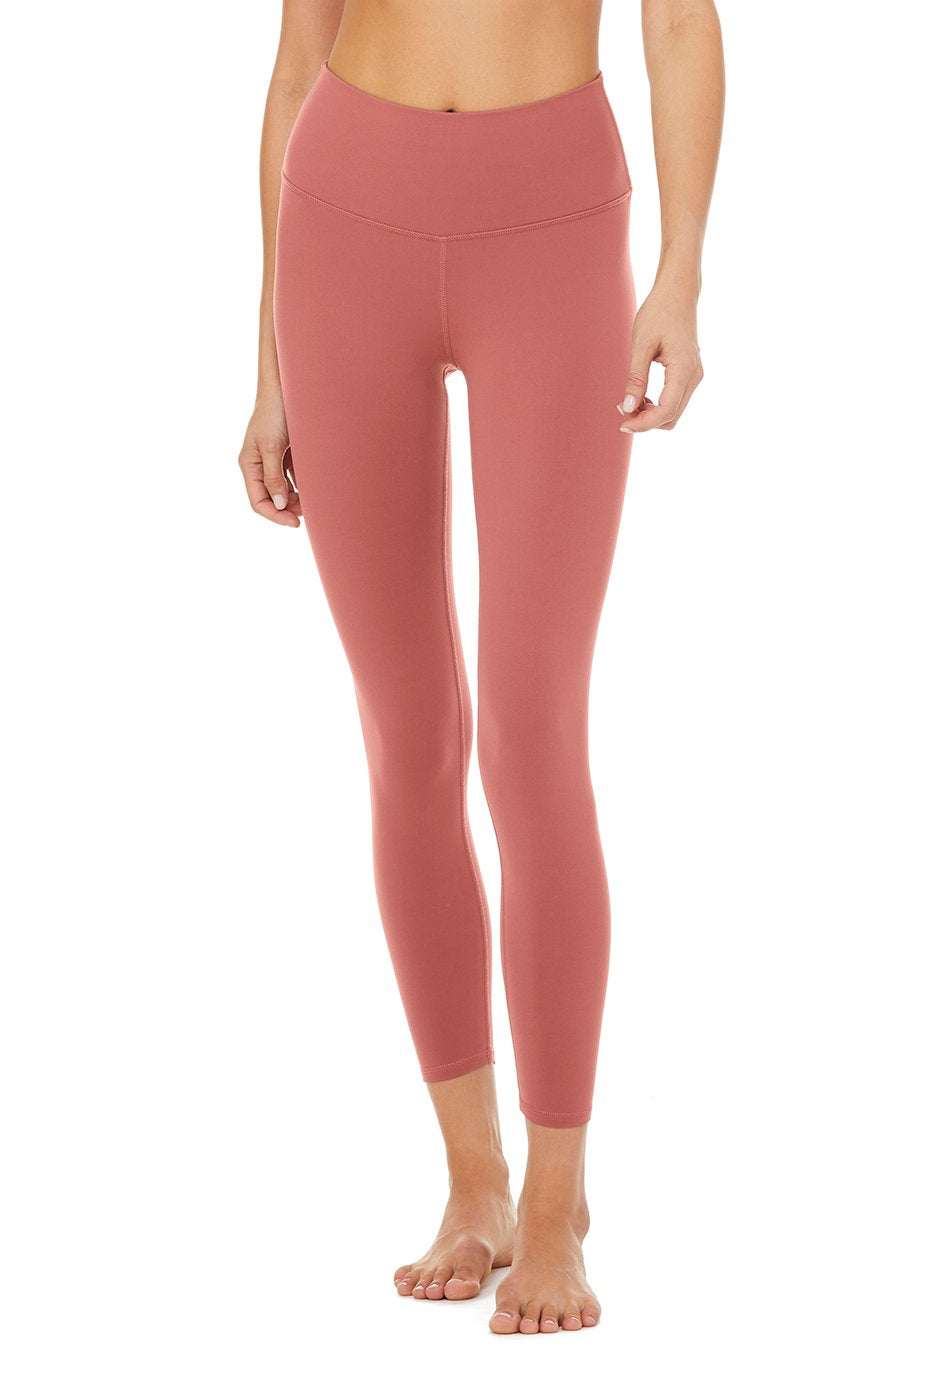 Alo Yoga 7/8 High-Waist Airbrush Legging - Rosewood